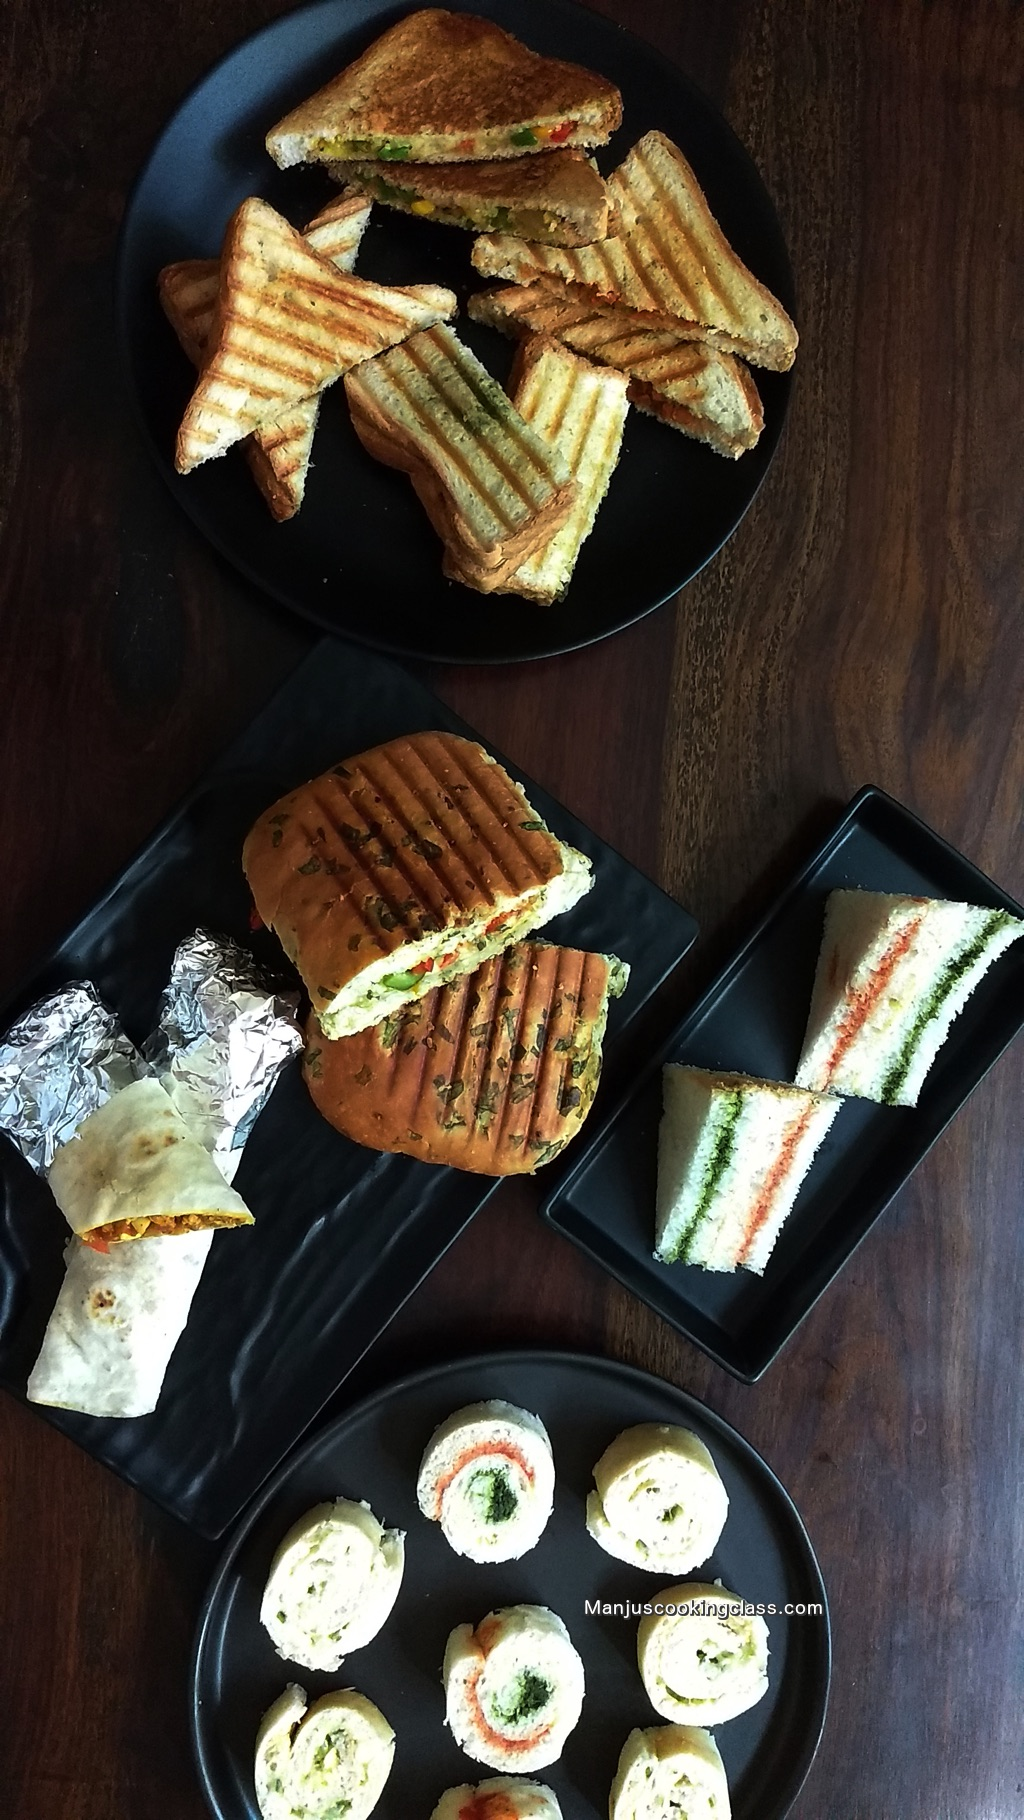 Vegetarian Sandwiches and Wraps Class